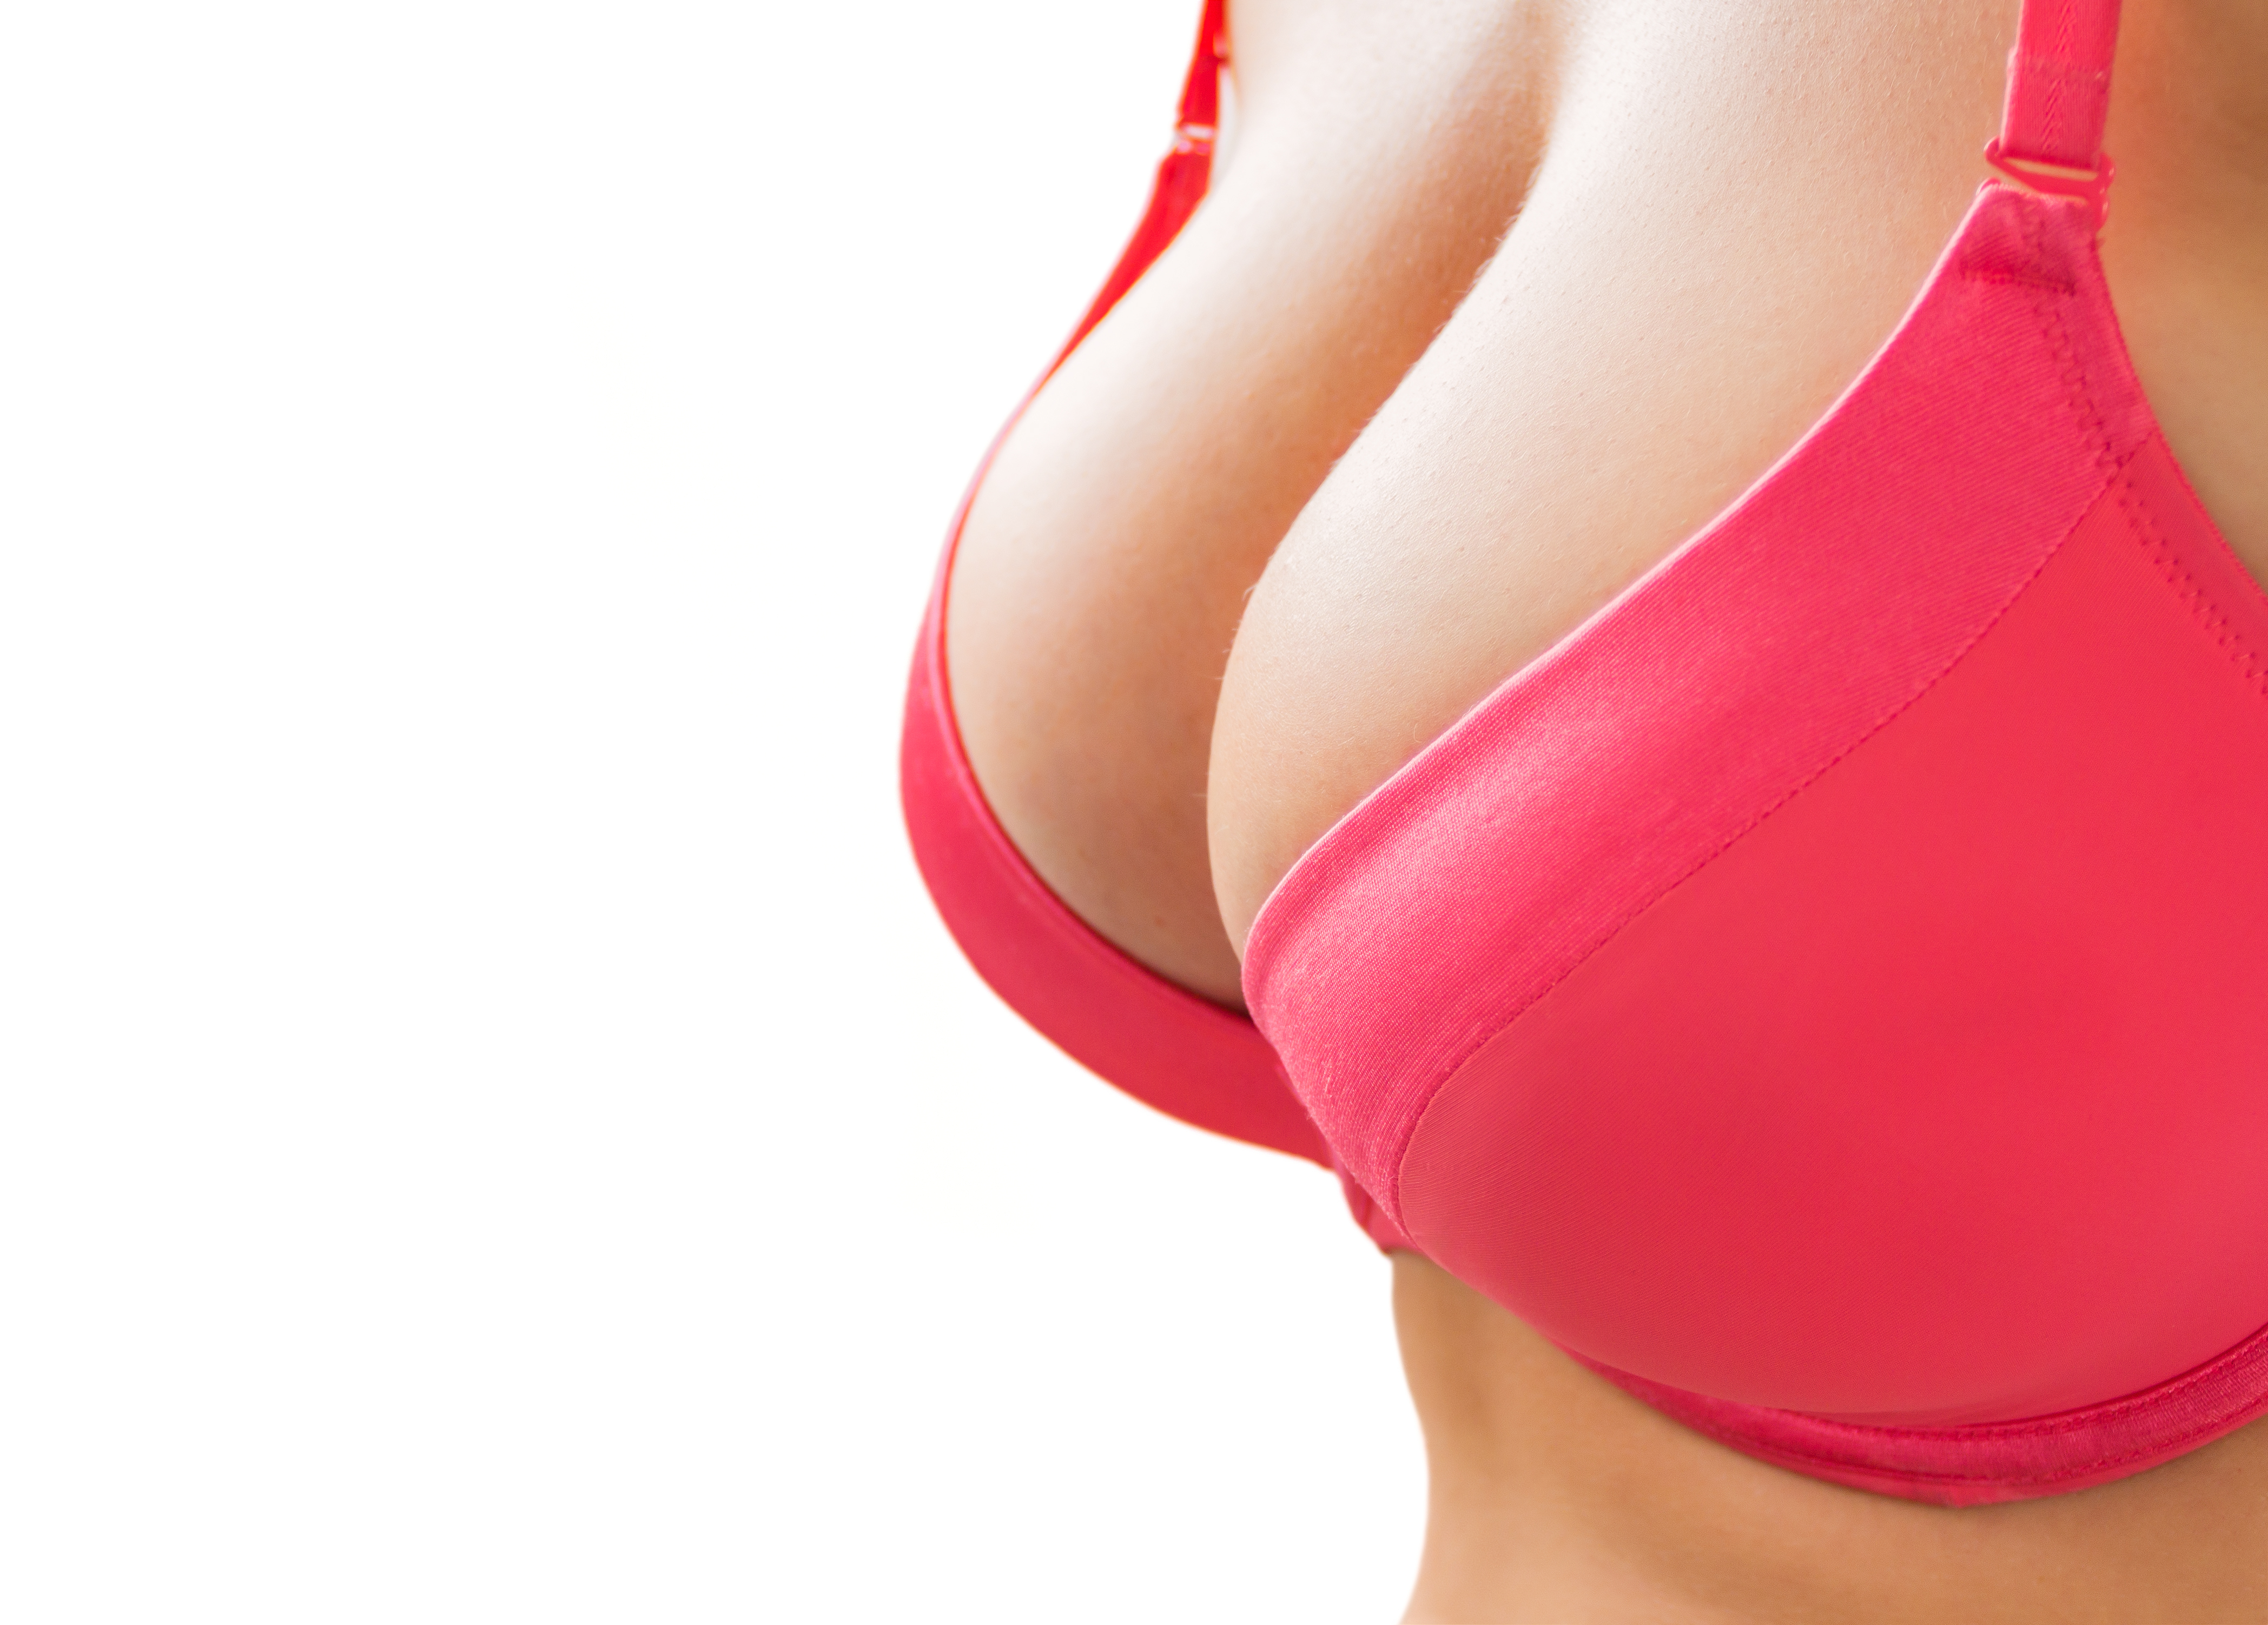 Does Birth Control Make Your Breasts Bigger